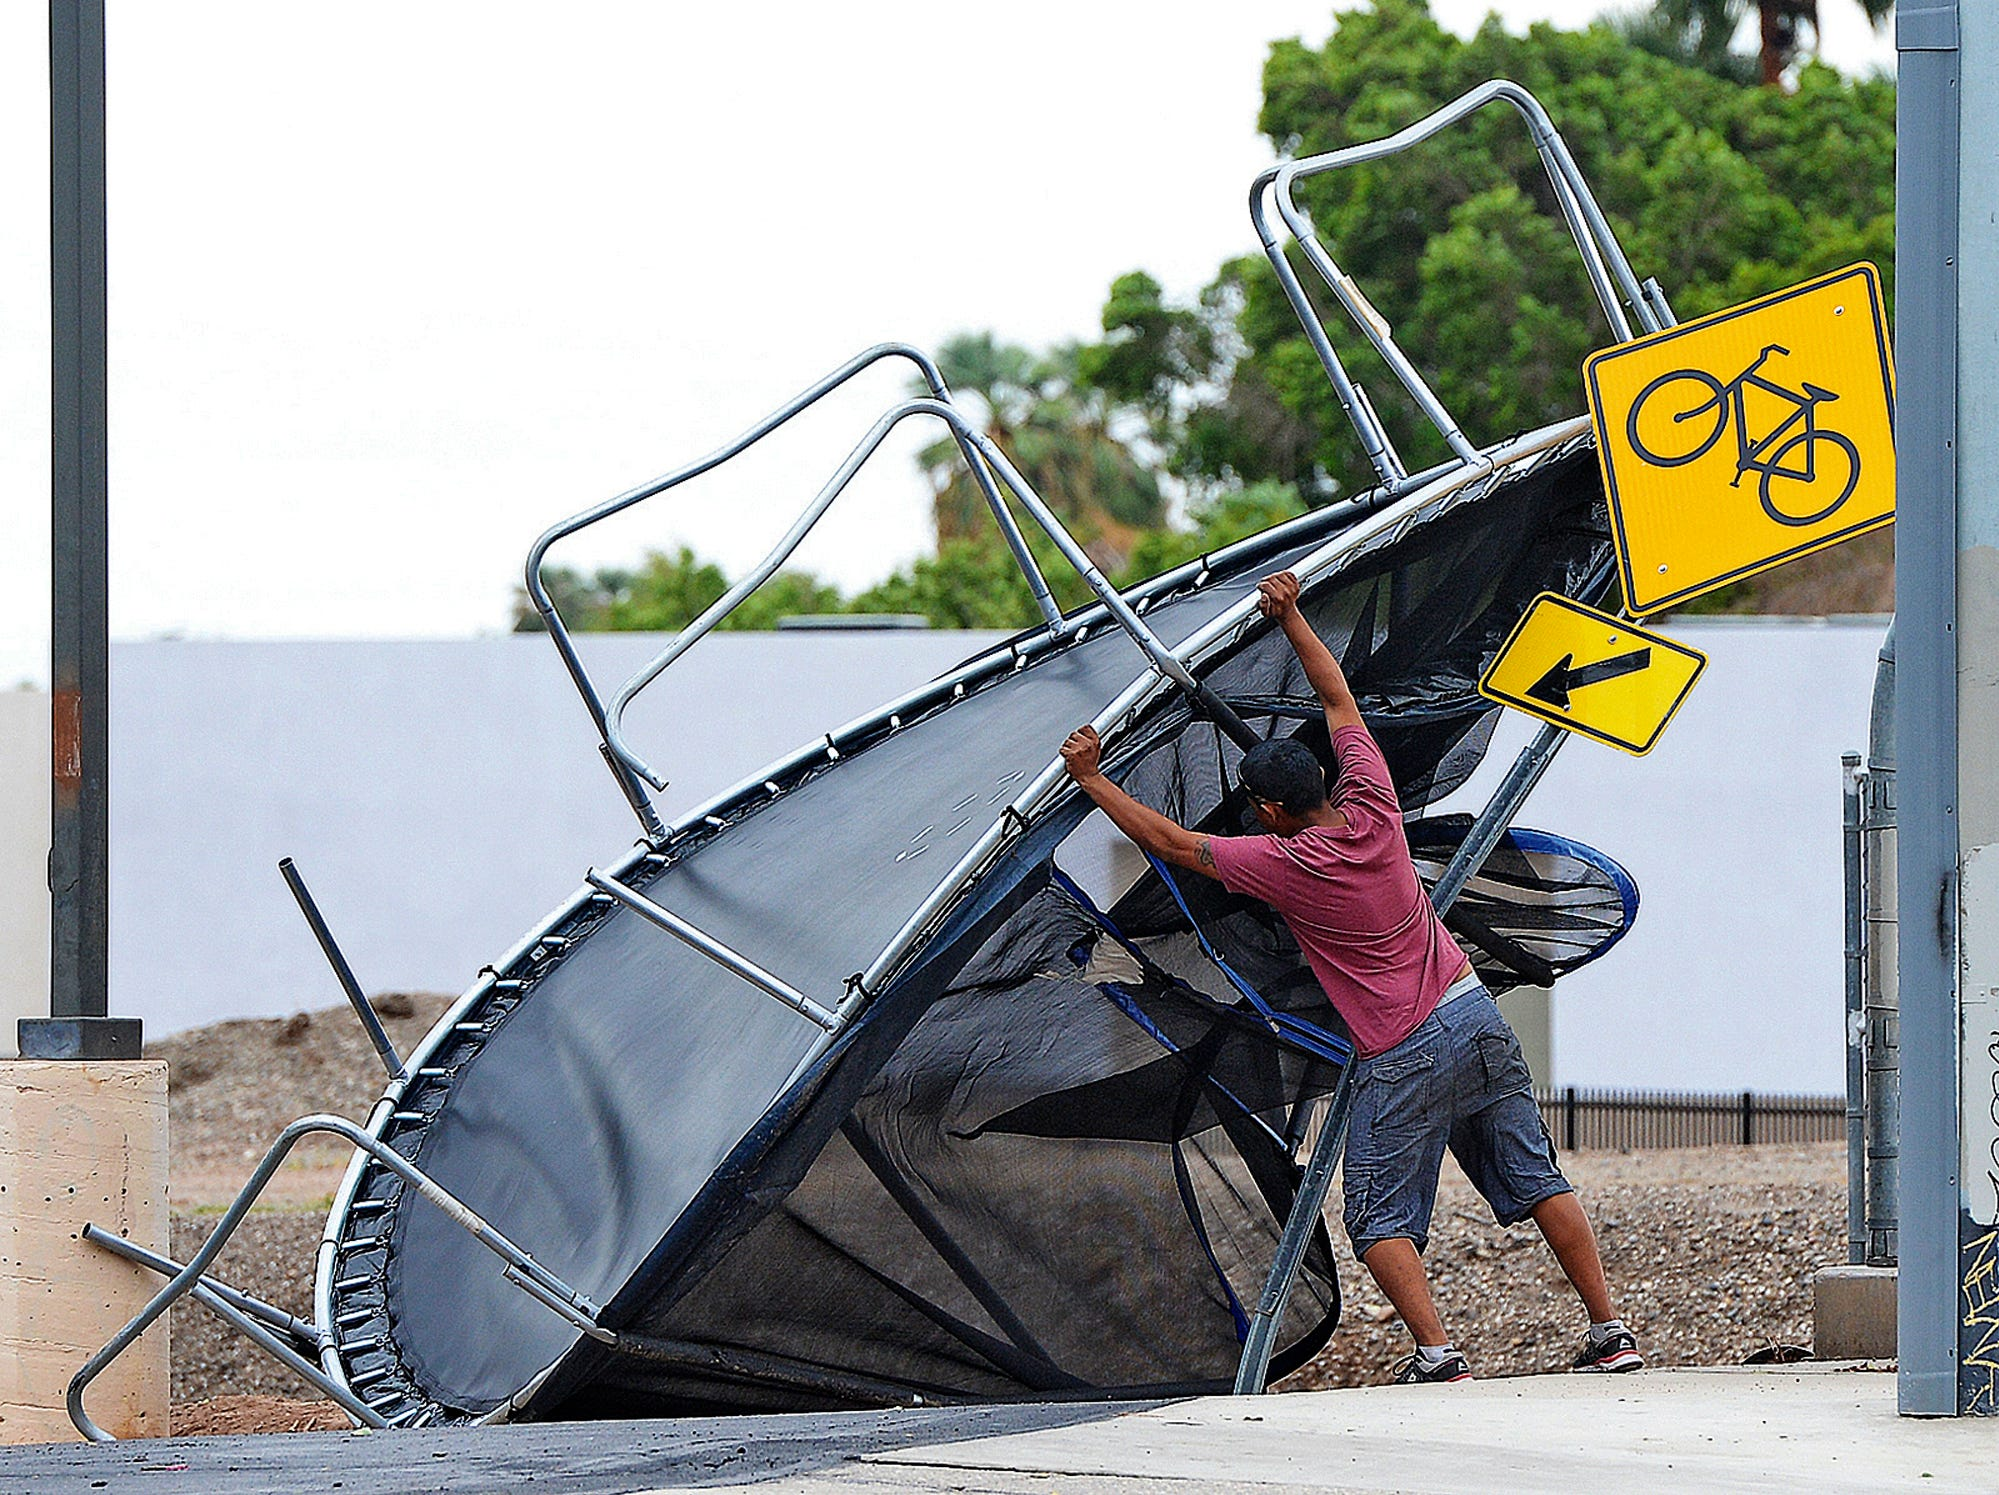 Joel Negrete begins moving a trampoline that was once in his yard before the start of Sunday's early afternoon rain storm.